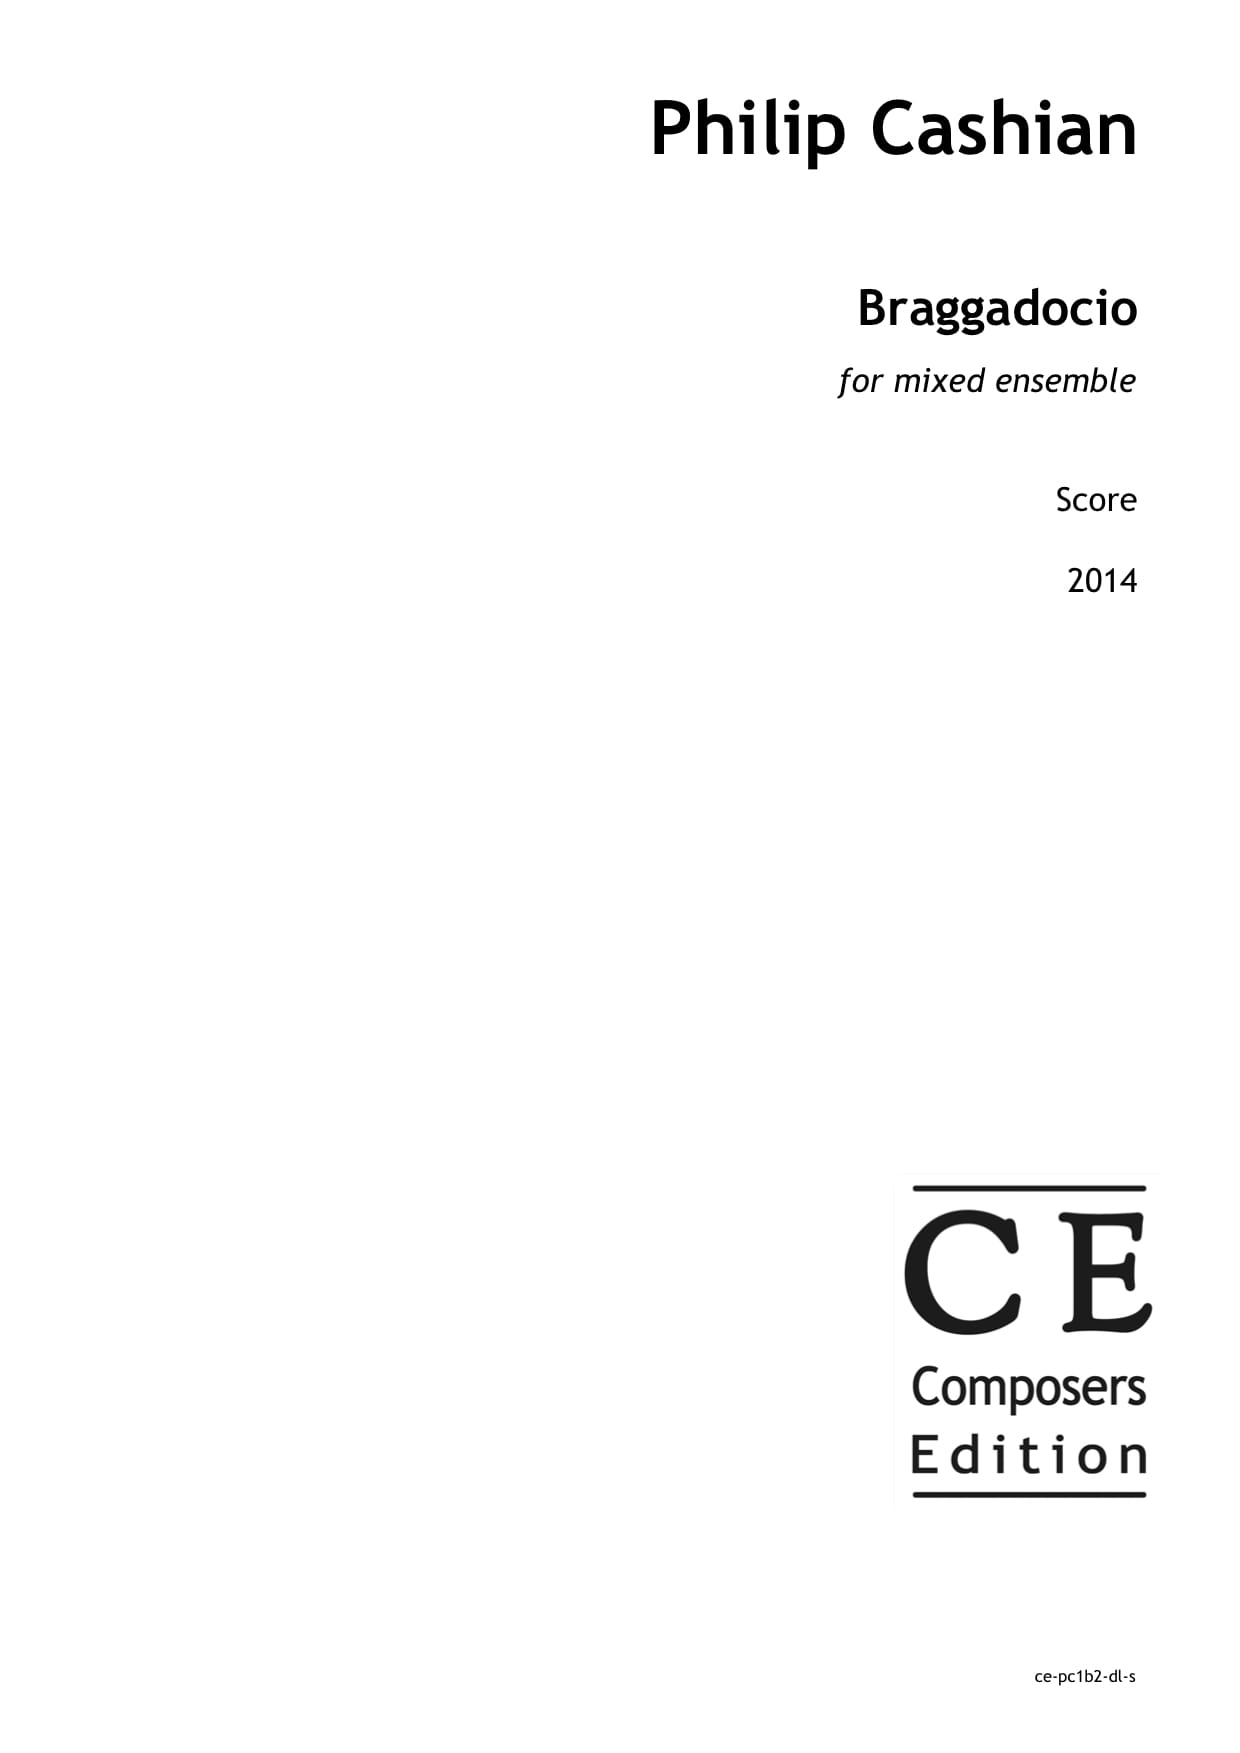 Philip Cashian: Braggadocio for mixed ensemble